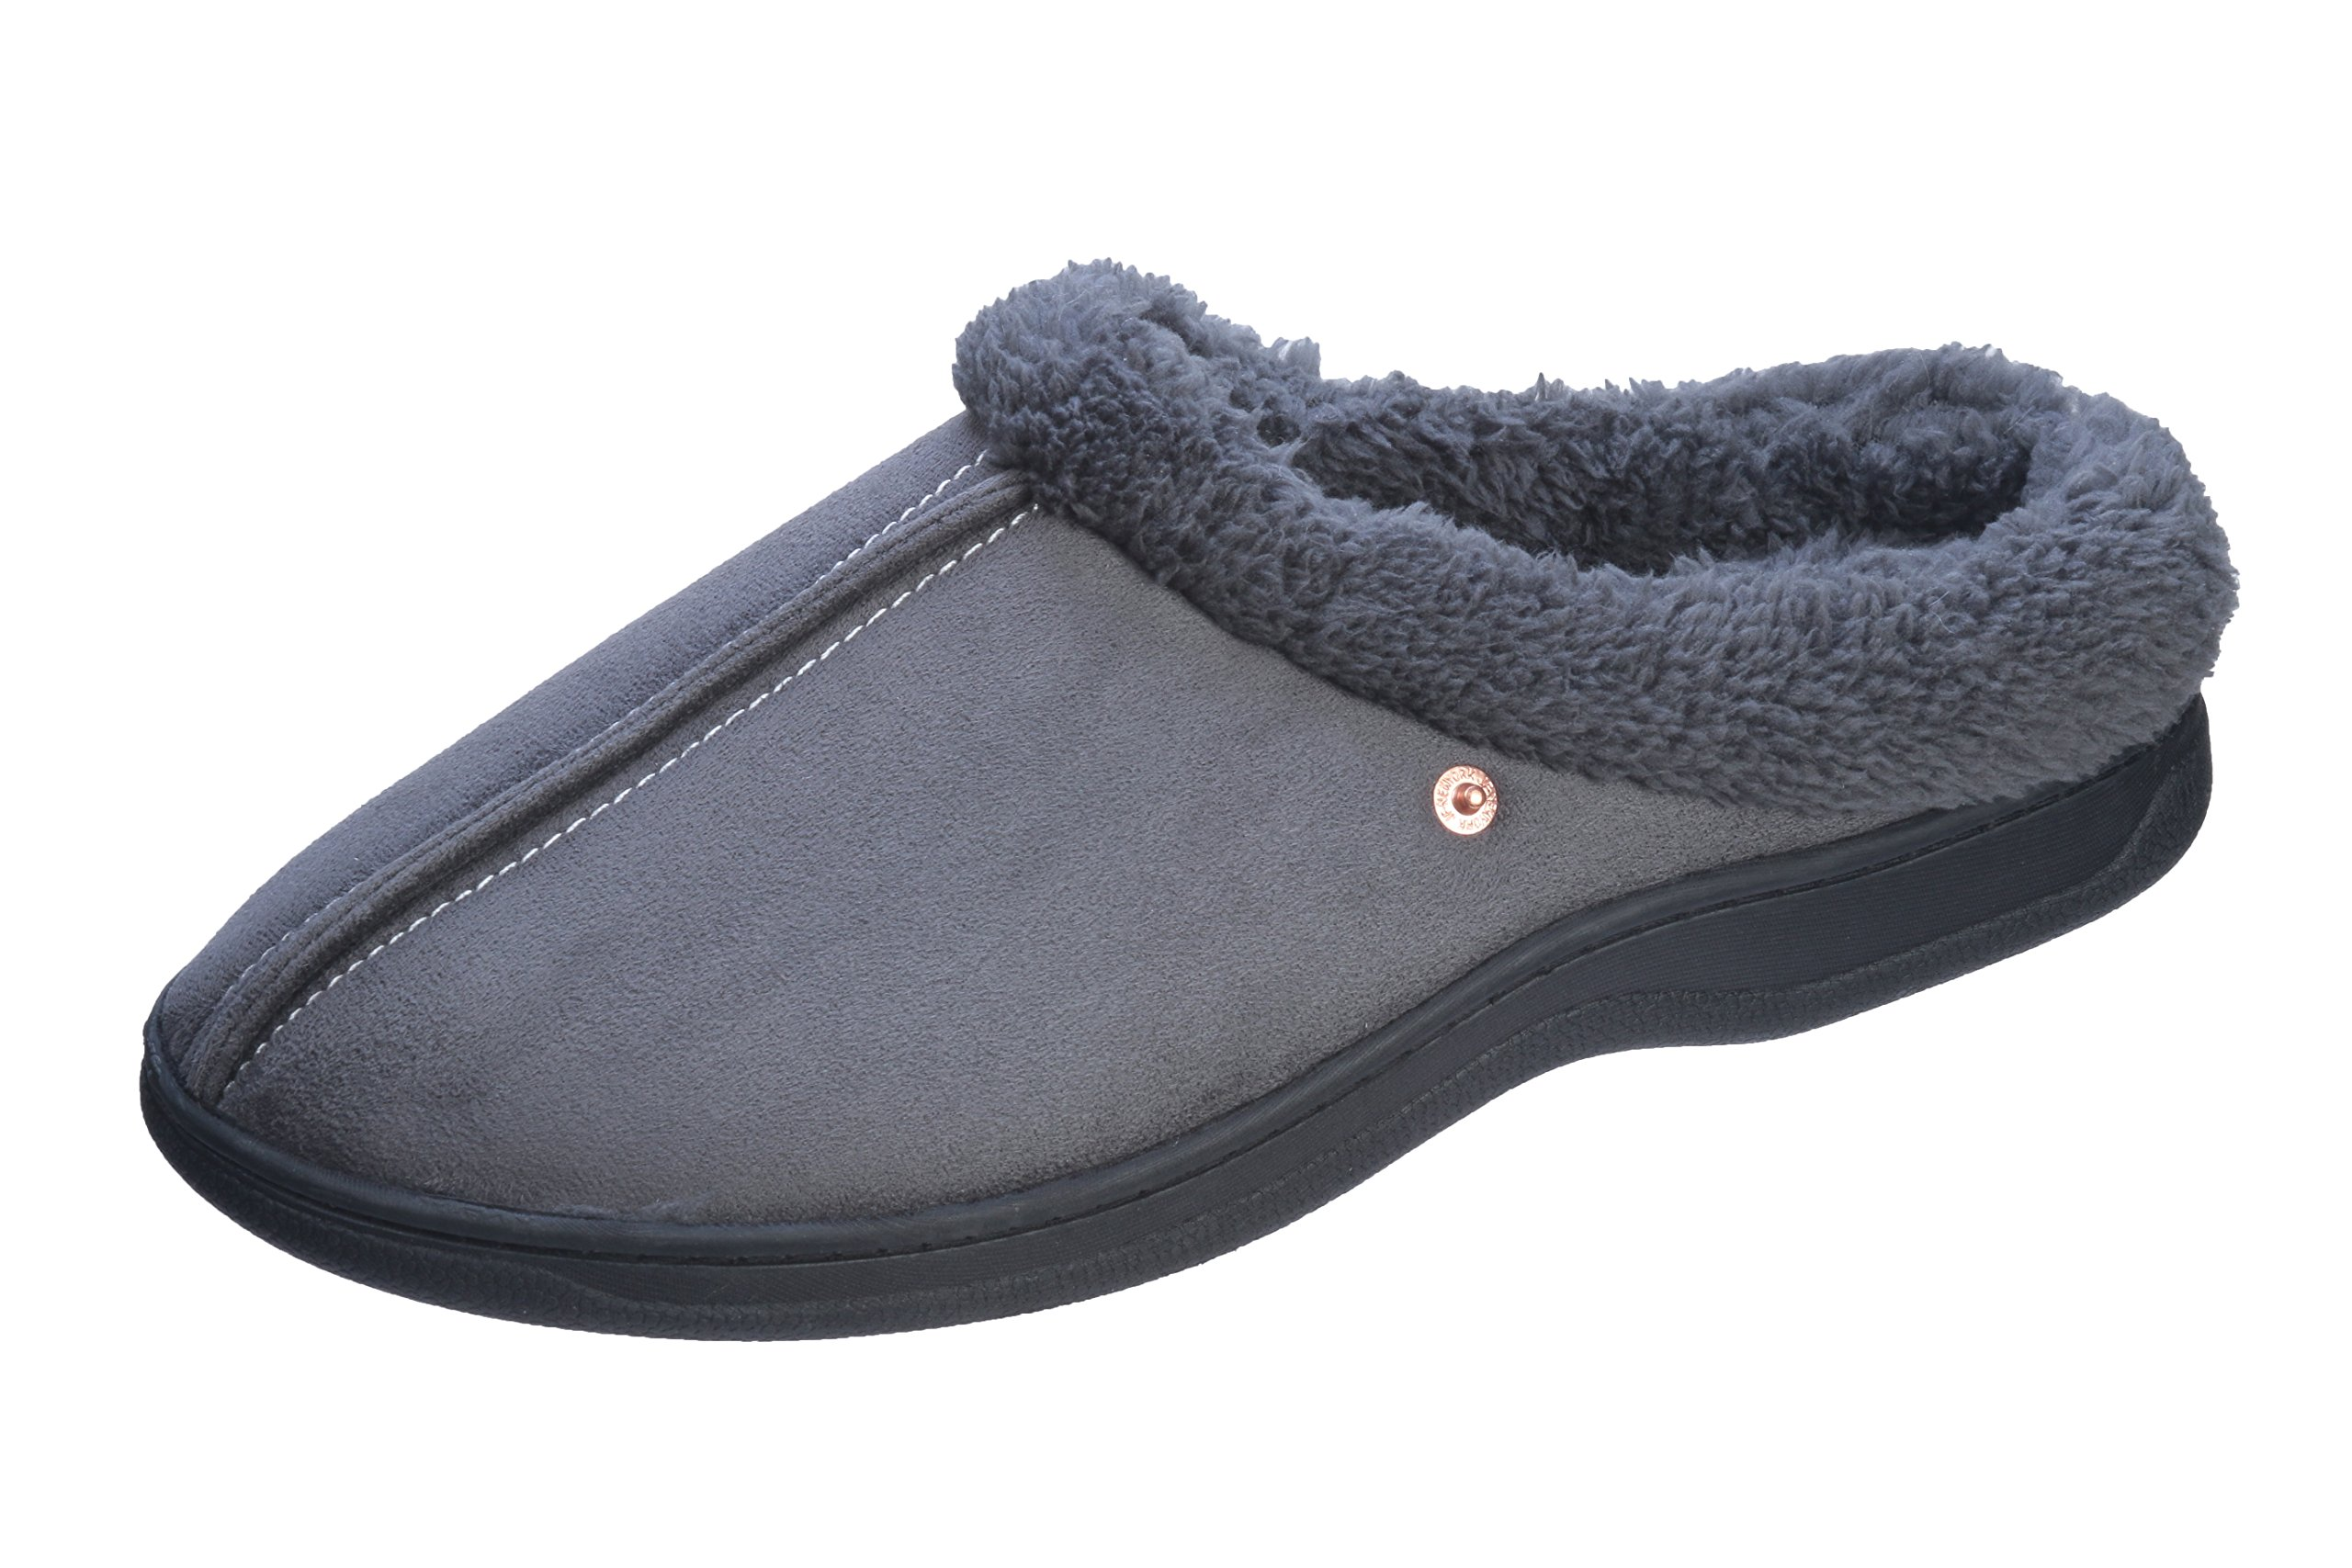 Roxsoni Slipper Indoor/Outdoor With TR Rubber Sole Extra Comfort and Warmth Men's Slippers, Gray, Large / 10-11 D(M) US